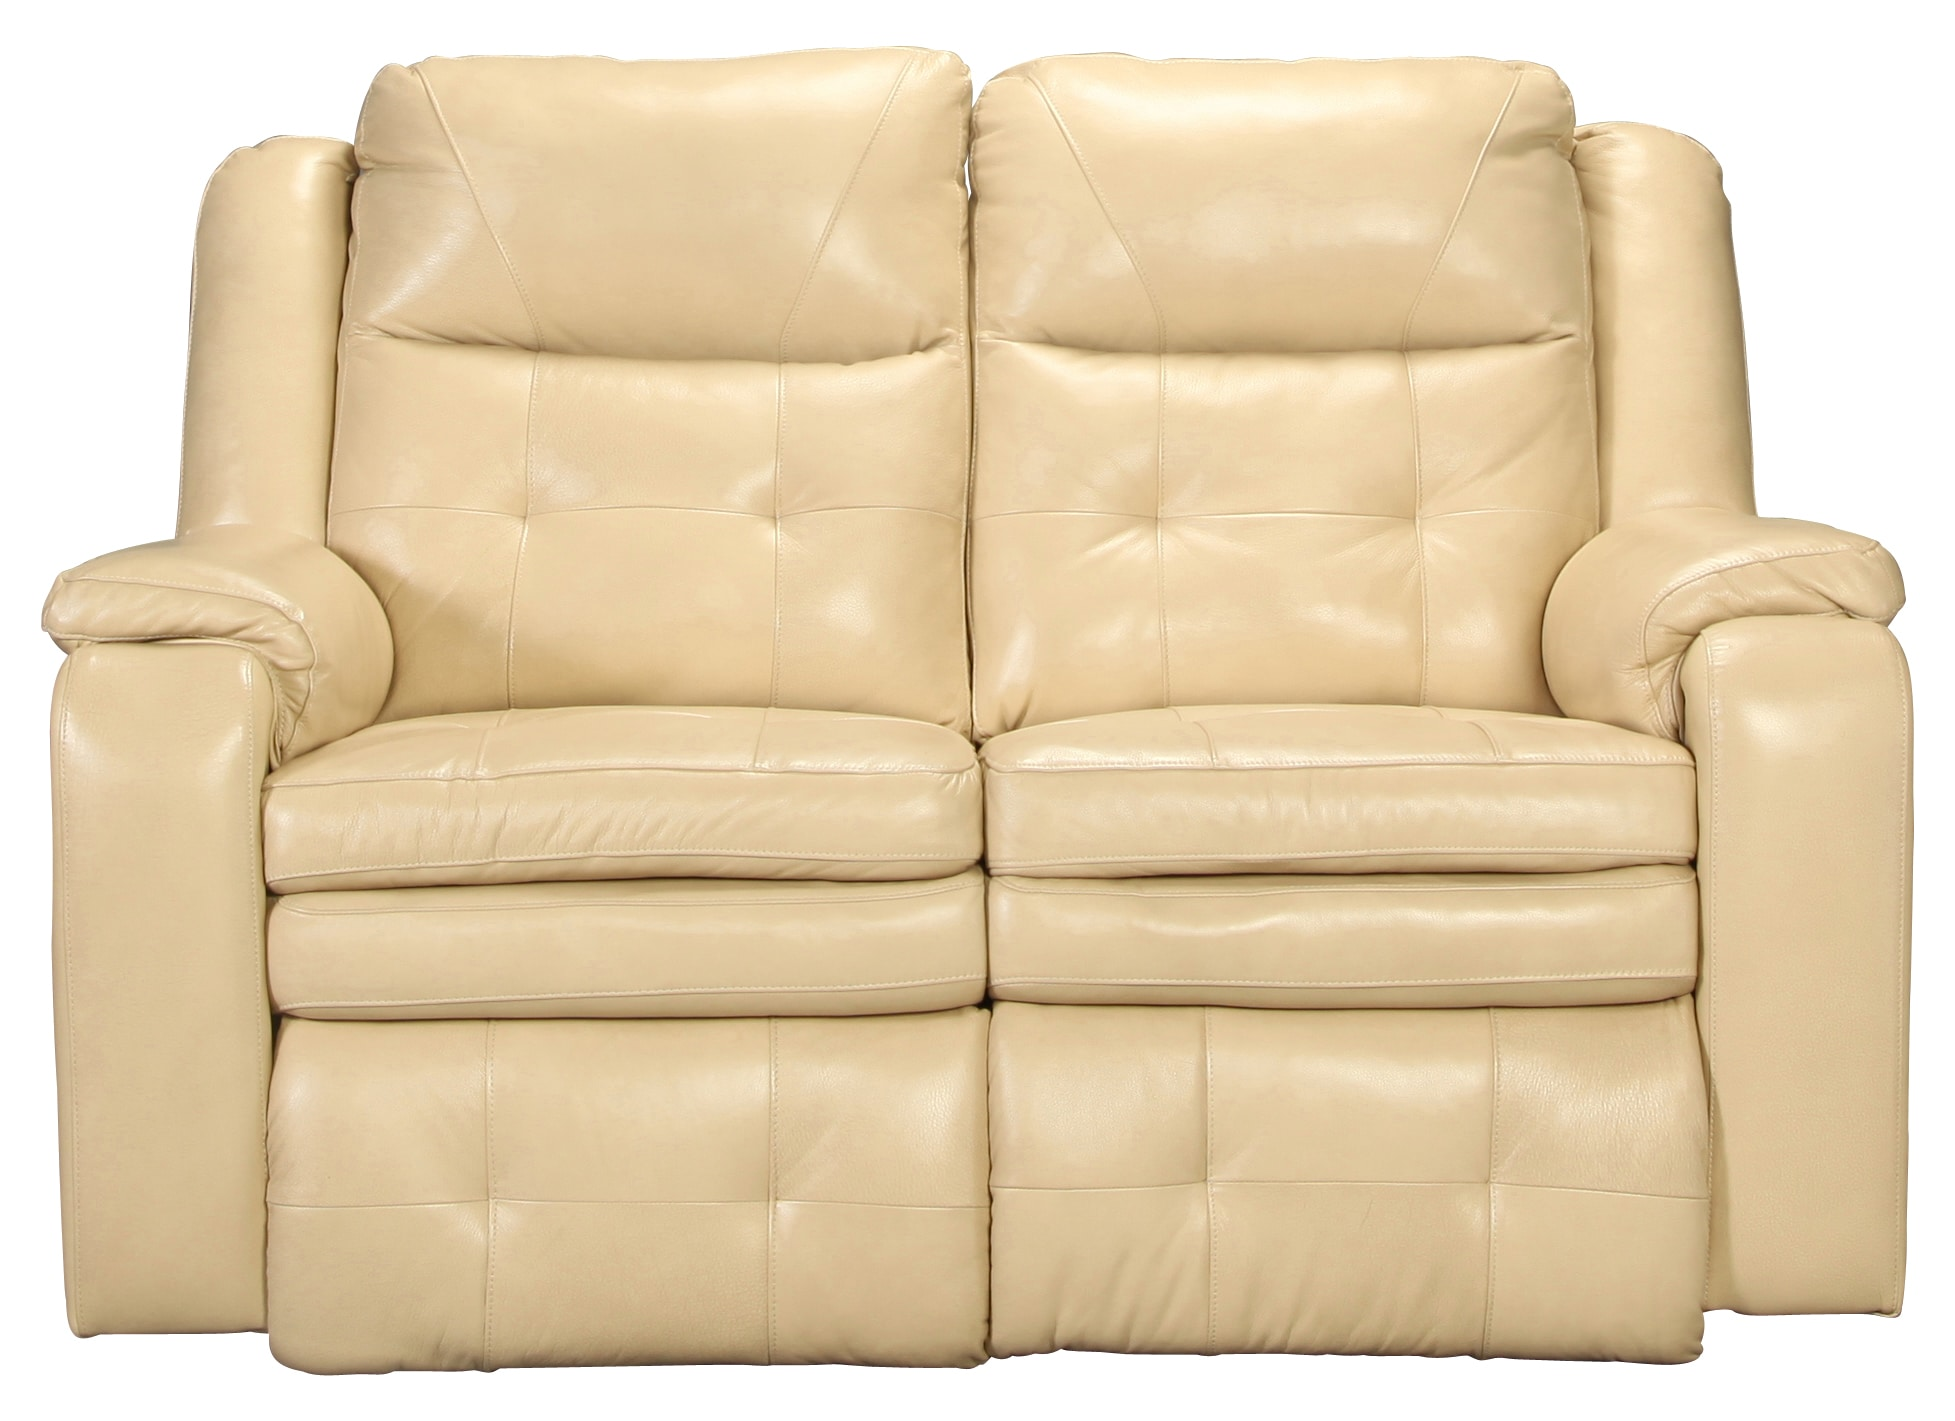 Paola Power Reclining Loveseat - Beach